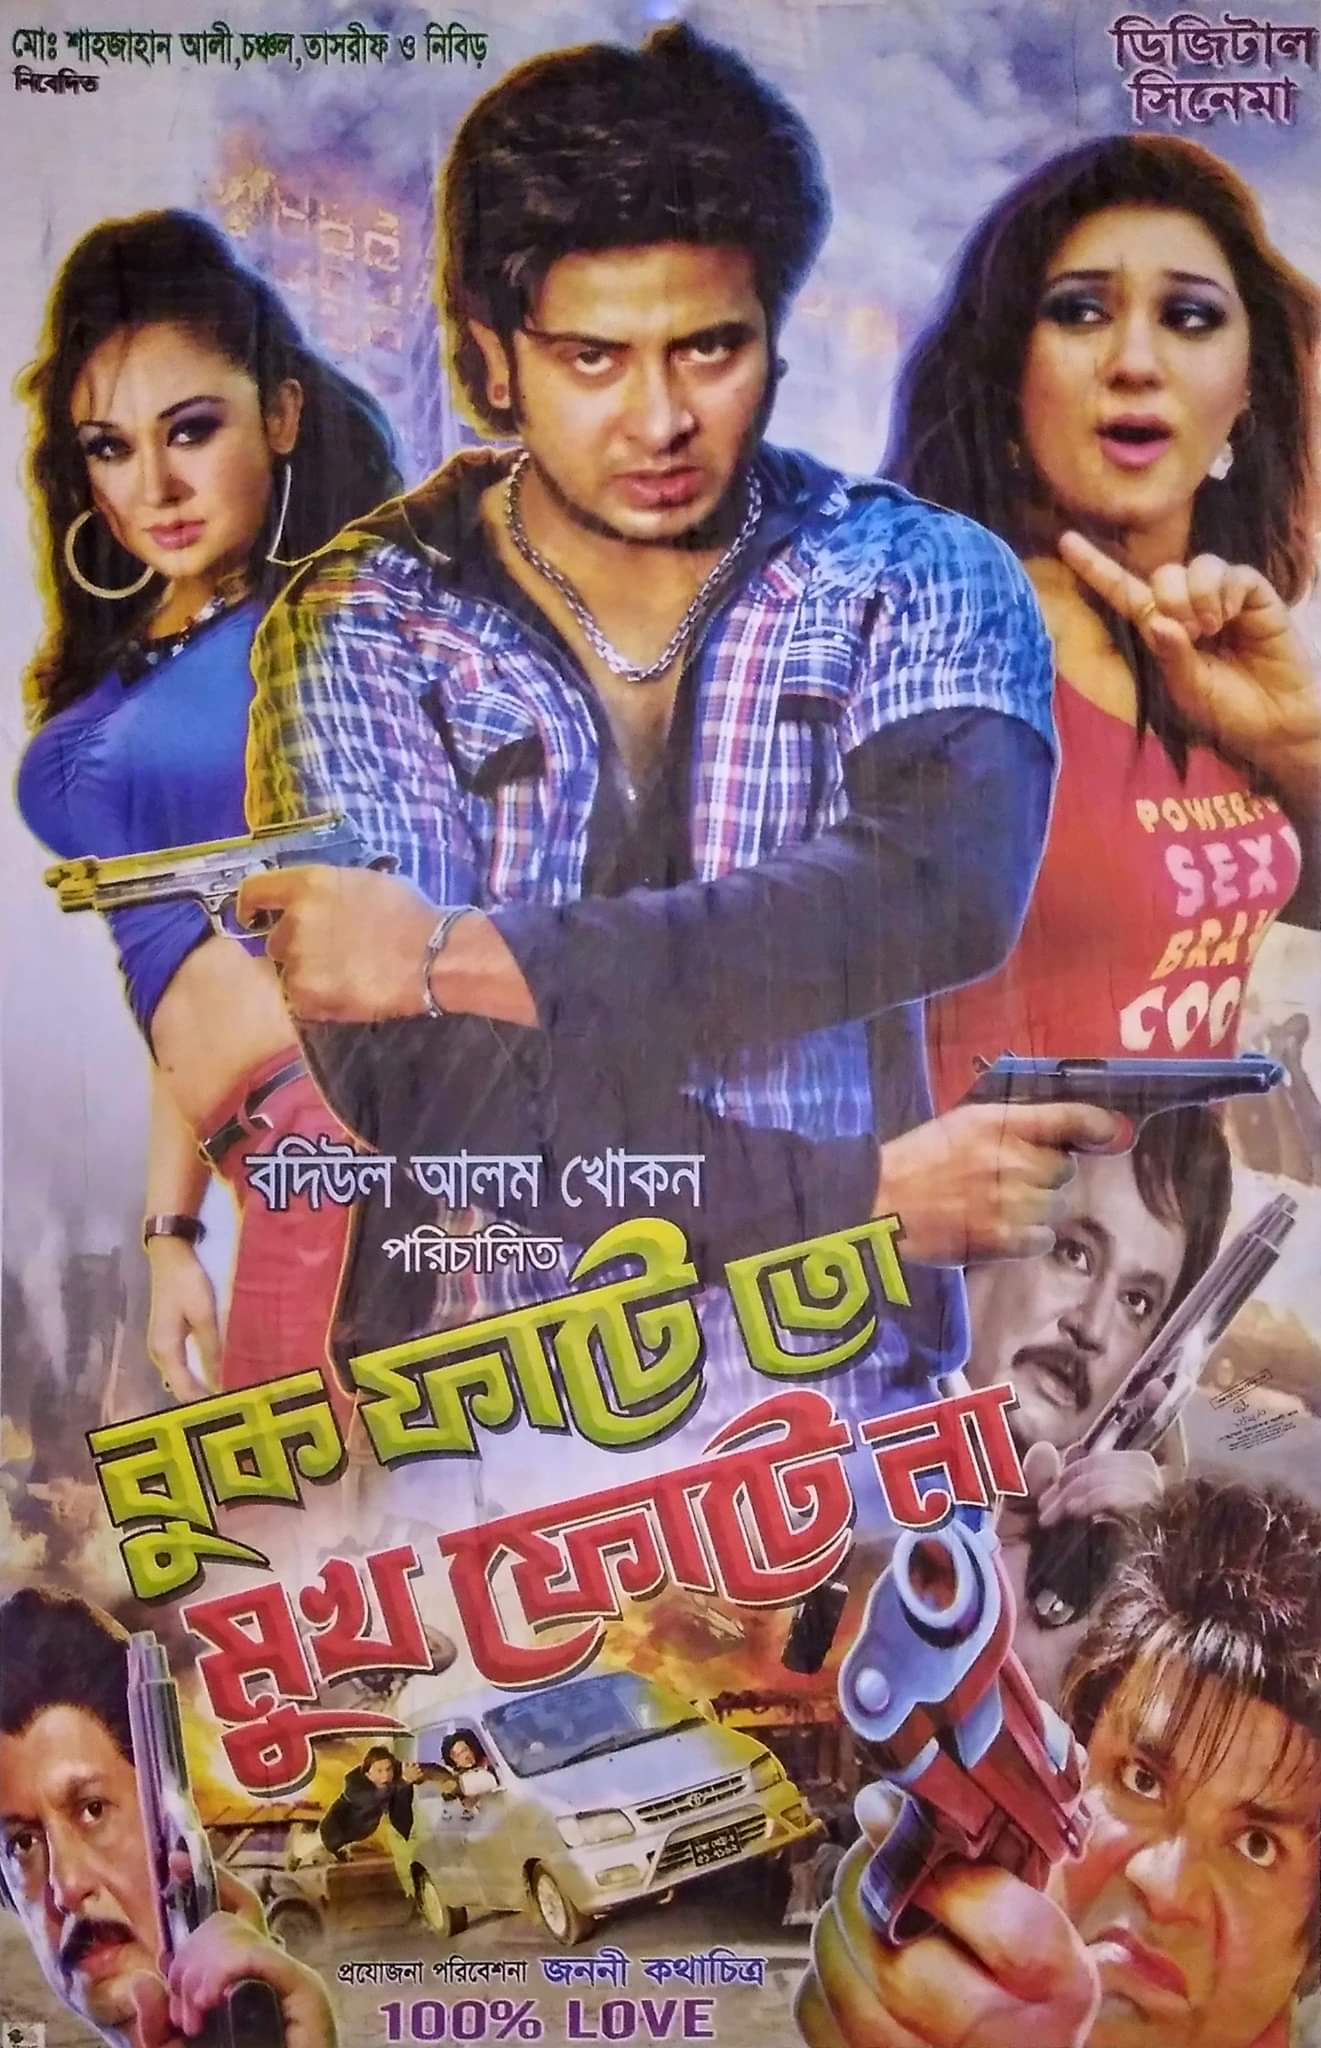 Buk Fate To Mukh Fote Na 2020 Bangla Full Movie 720p HDRip 950MB MKV